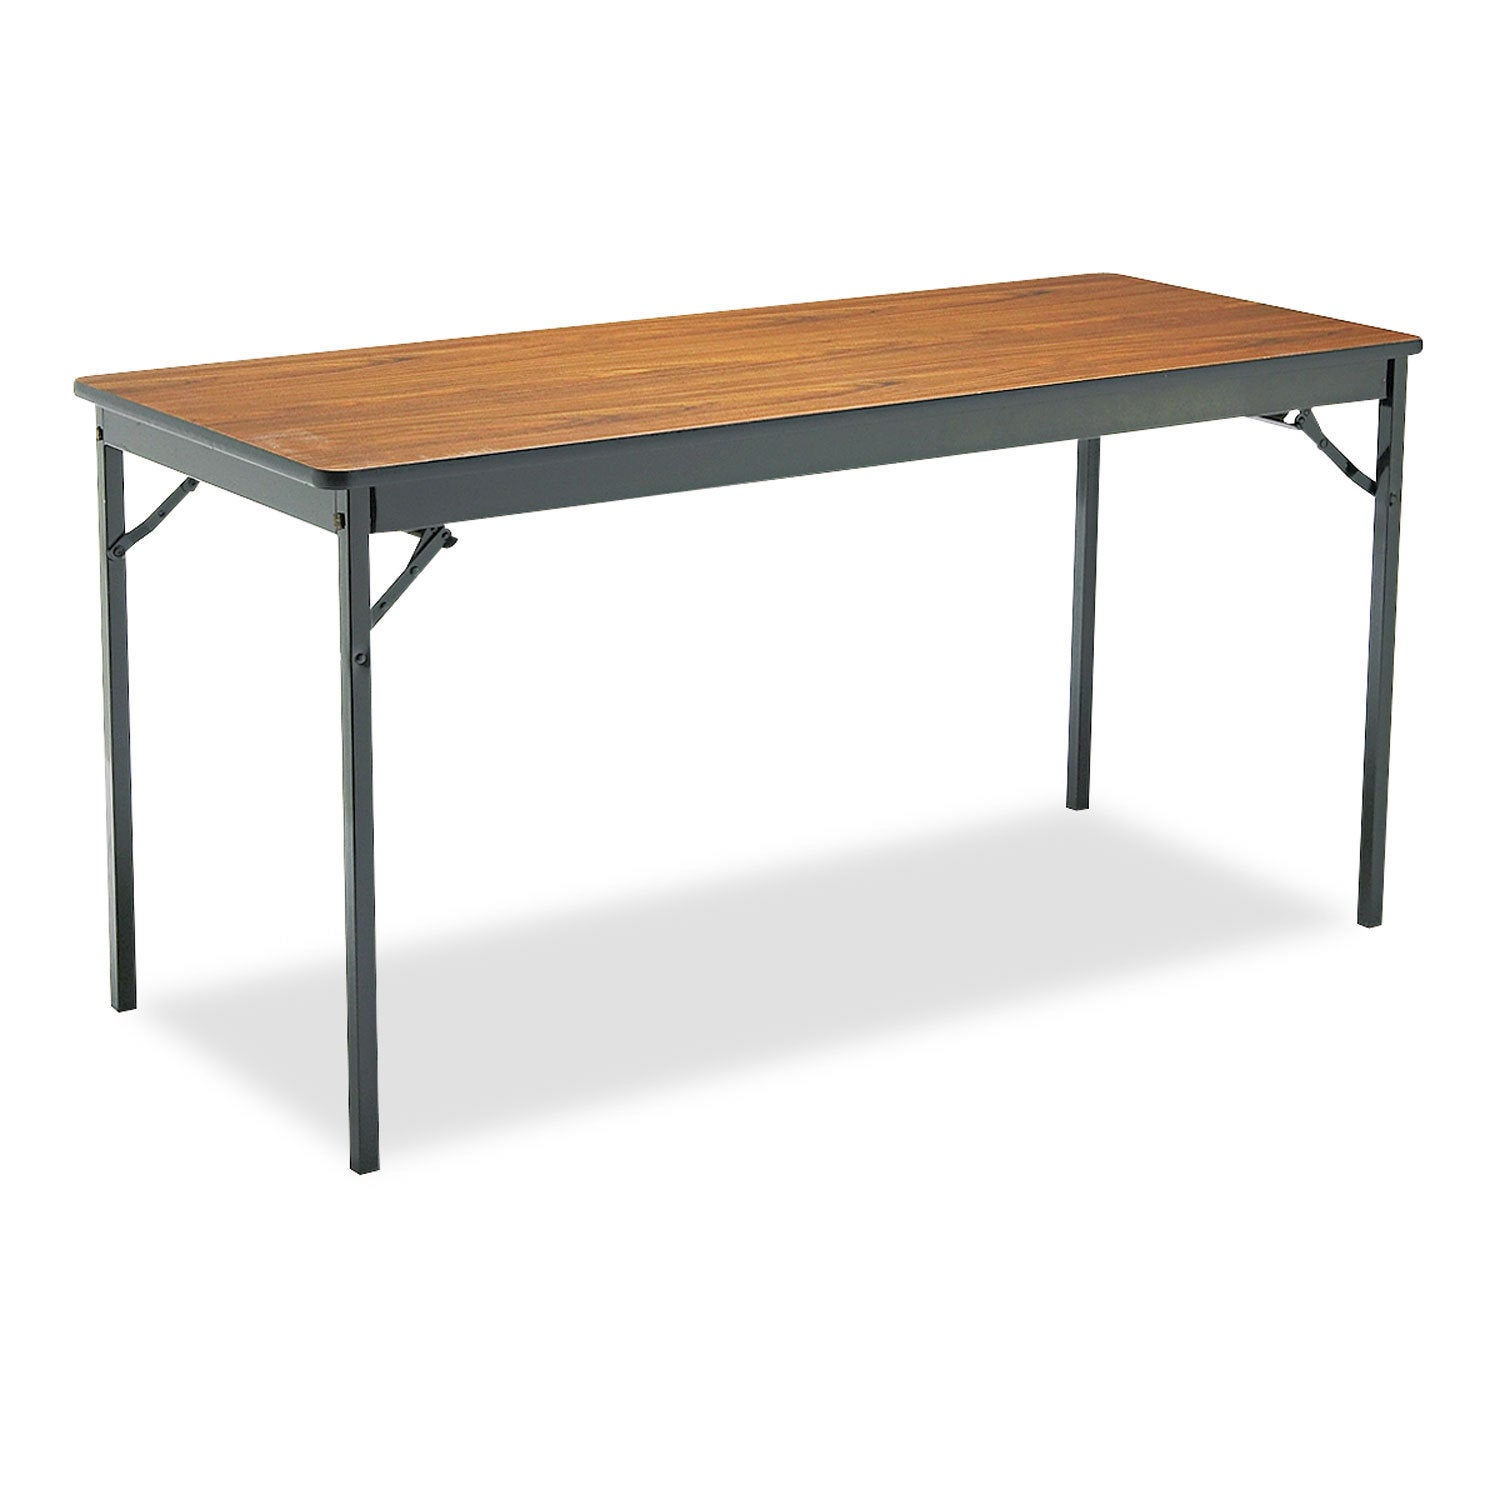 Barricks Special Size Folding Table, Rectangular, 60w x 2...